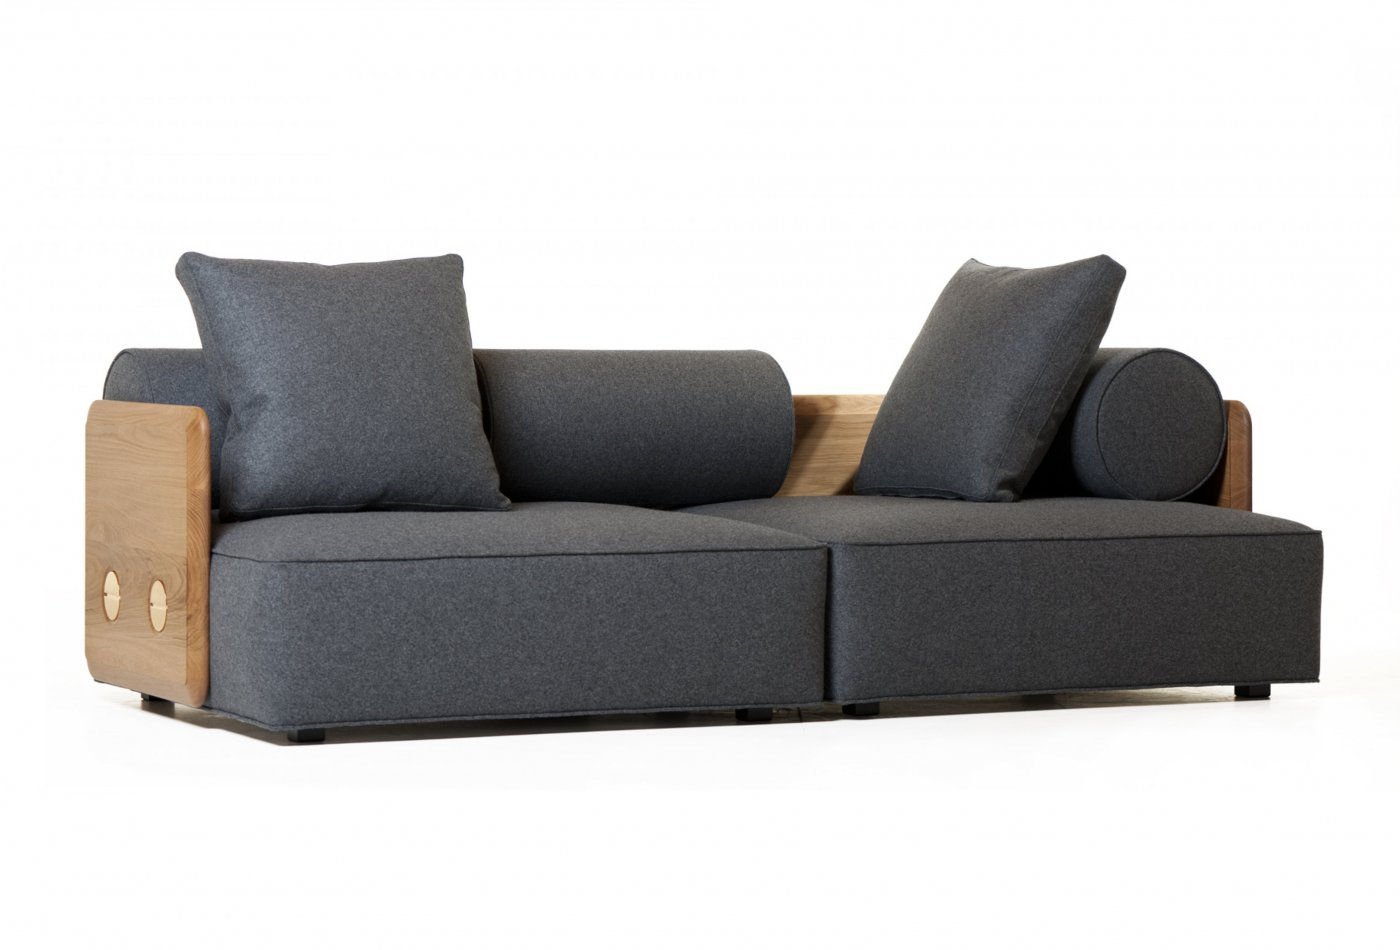 highend and handsome contemporary sofas - view in gallery deco sofa profile in danish oiled oak and wool